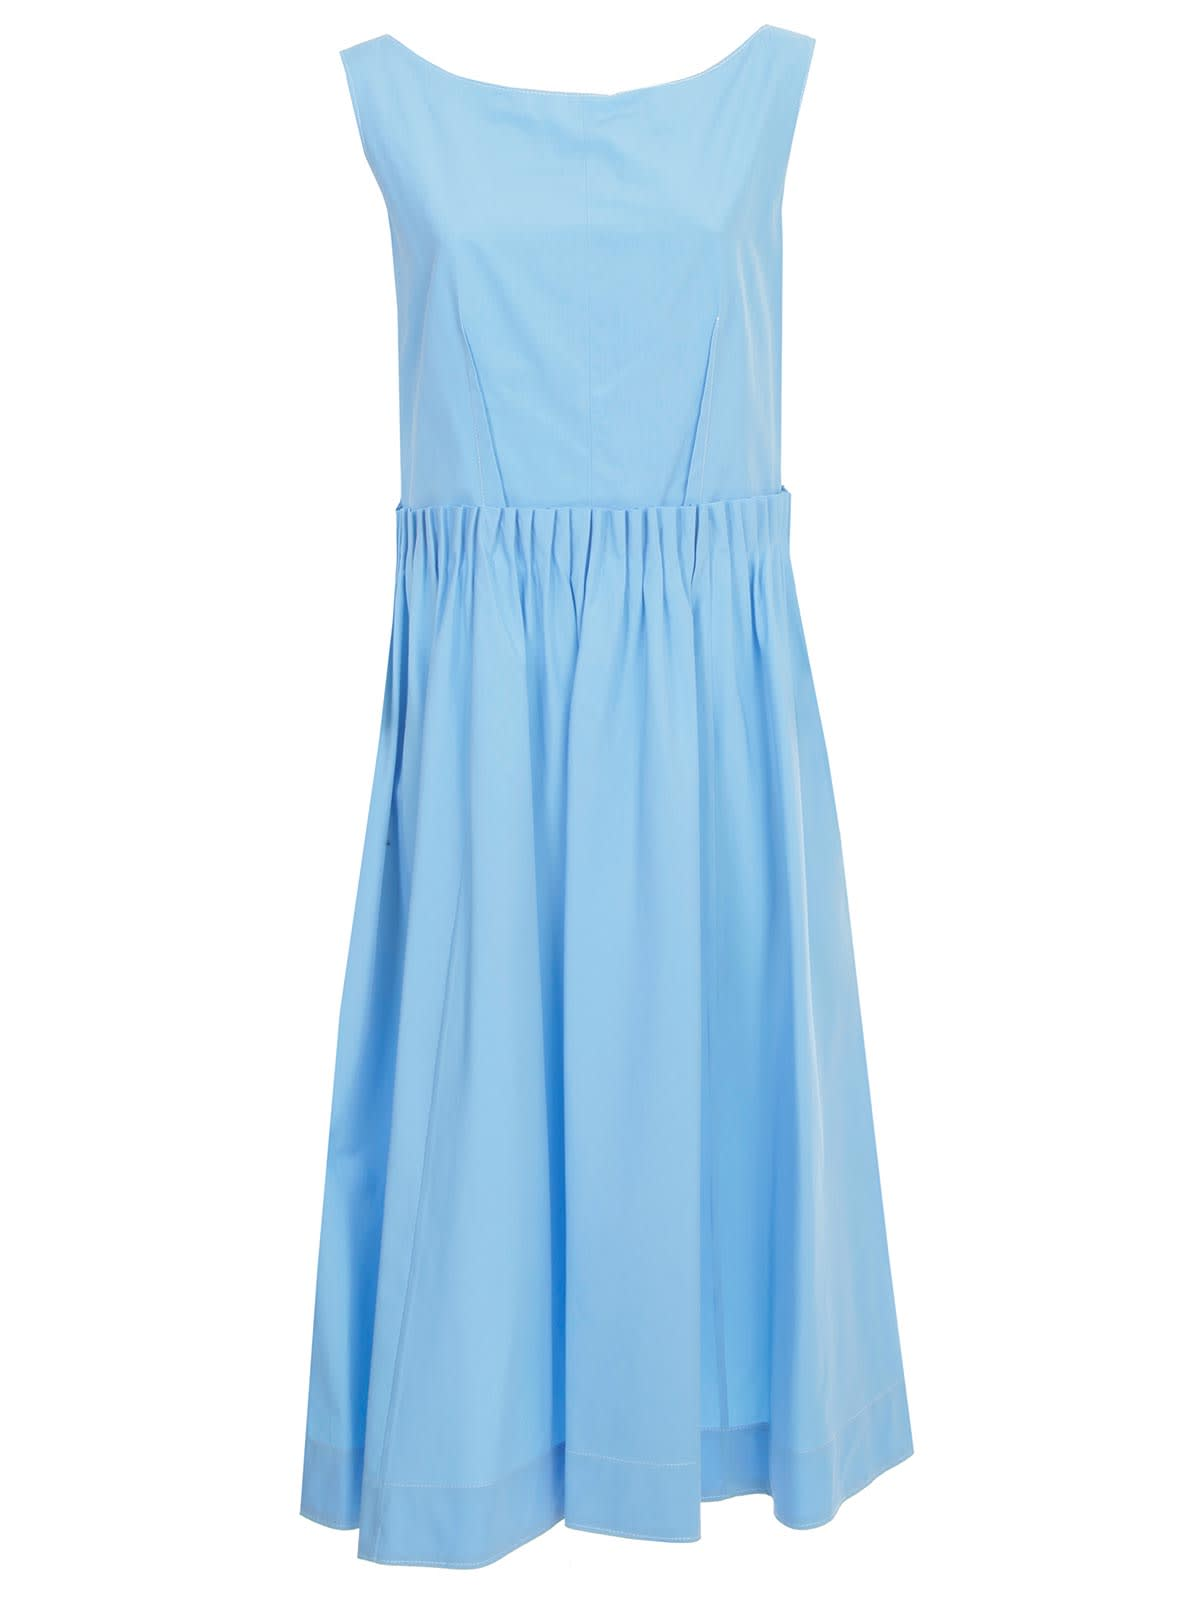 Buy Marni Dress W/s Cotton Popeline online, shop Marni with free shipping